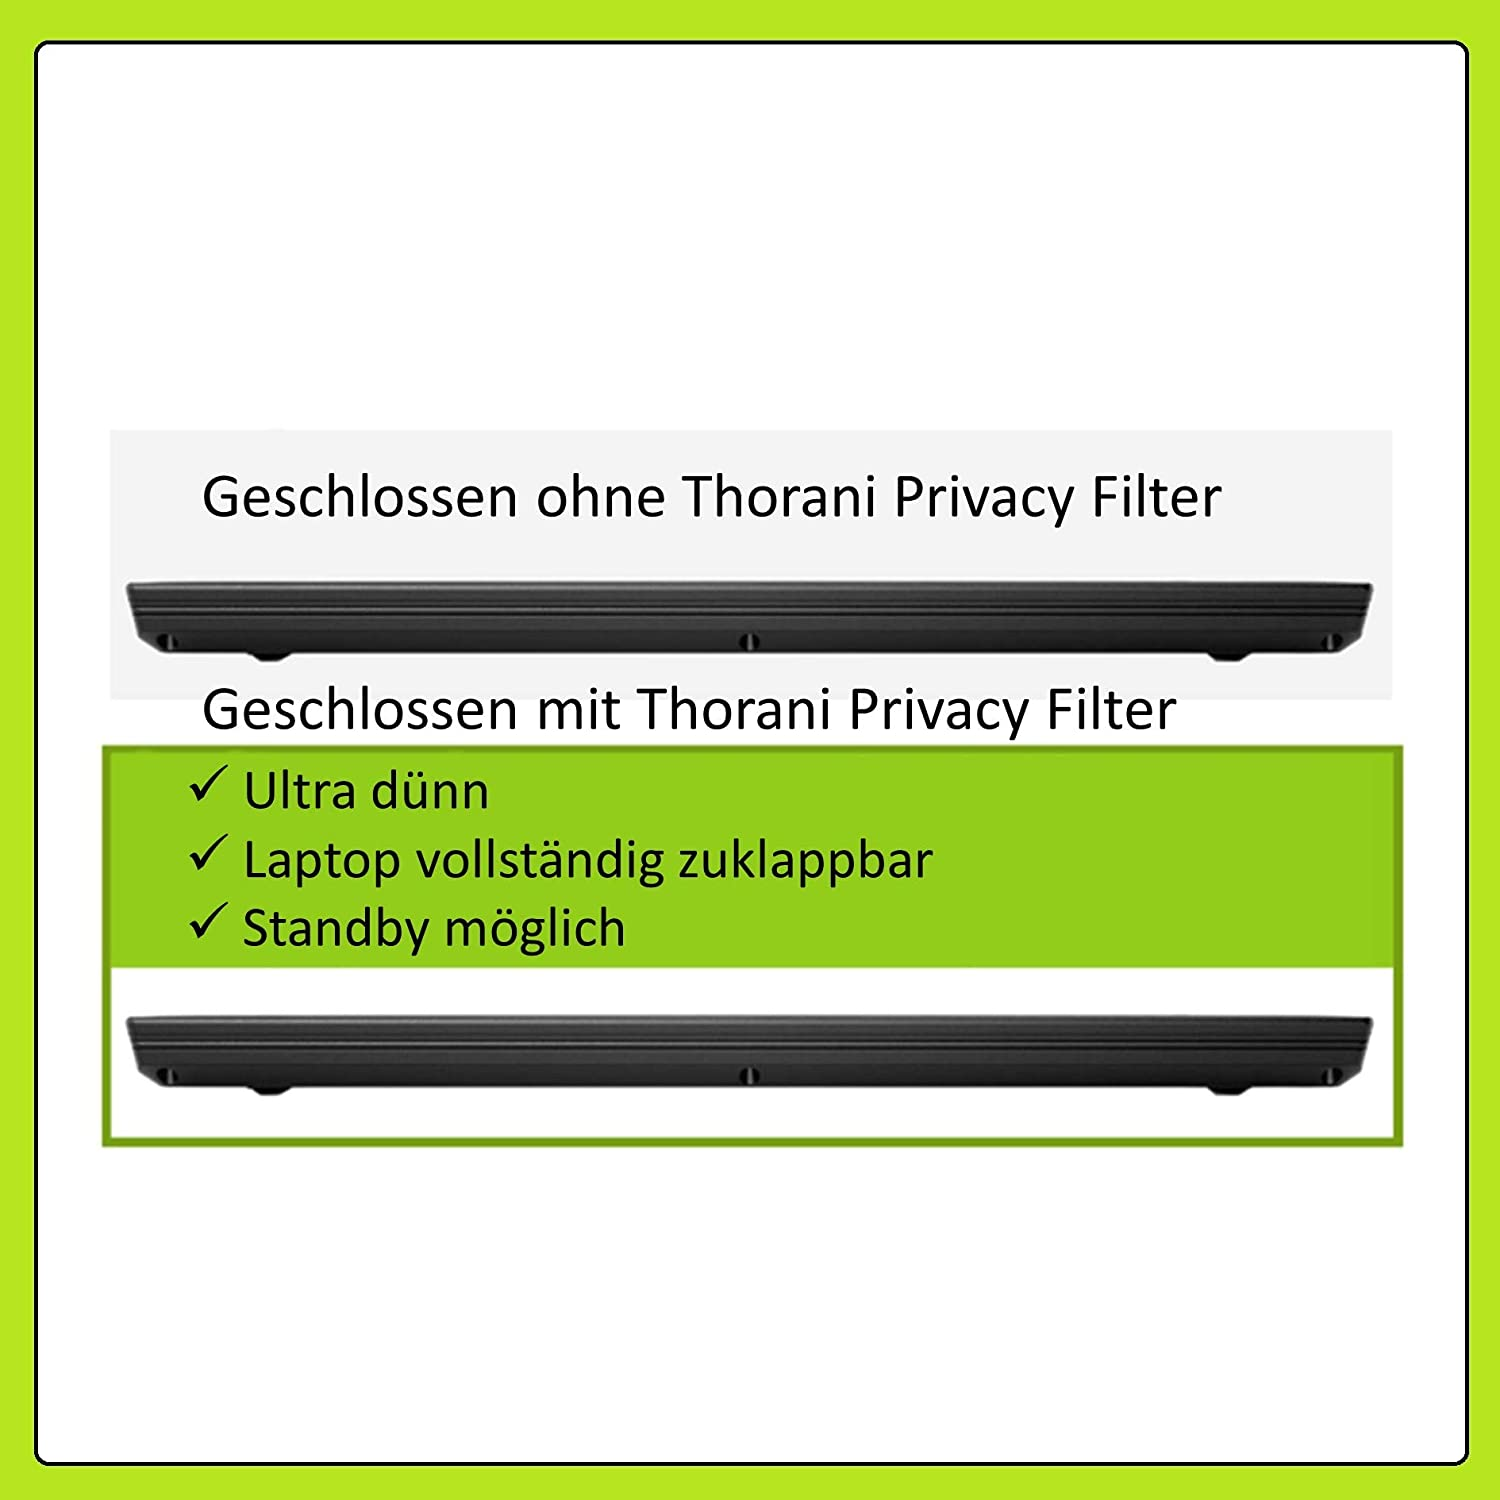 16:9 14.0 Inch with Magnet Thorani Privacy Screen Filter /& Protector for Laptop I Notebook